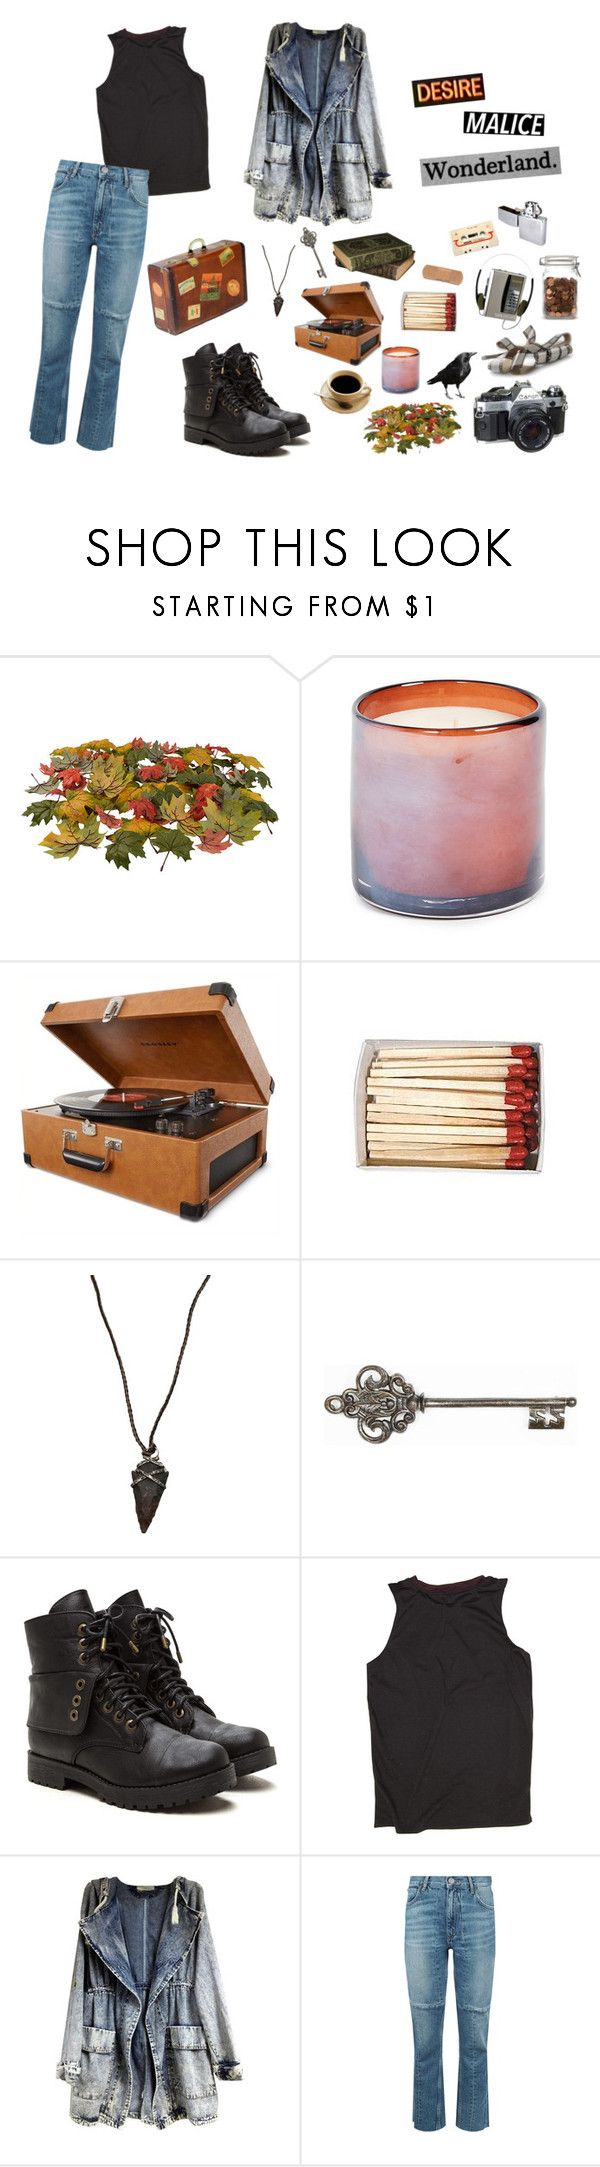 """November Breeze"" by ghxxsted ❤ liked on Polyvore featuring American Eagle Outfitters, LAFCO, Crosley Radio & Furniture, Lou Zeldis, Graham & Brown, Sandro, vintage, Fall, autumn and autumn2017"